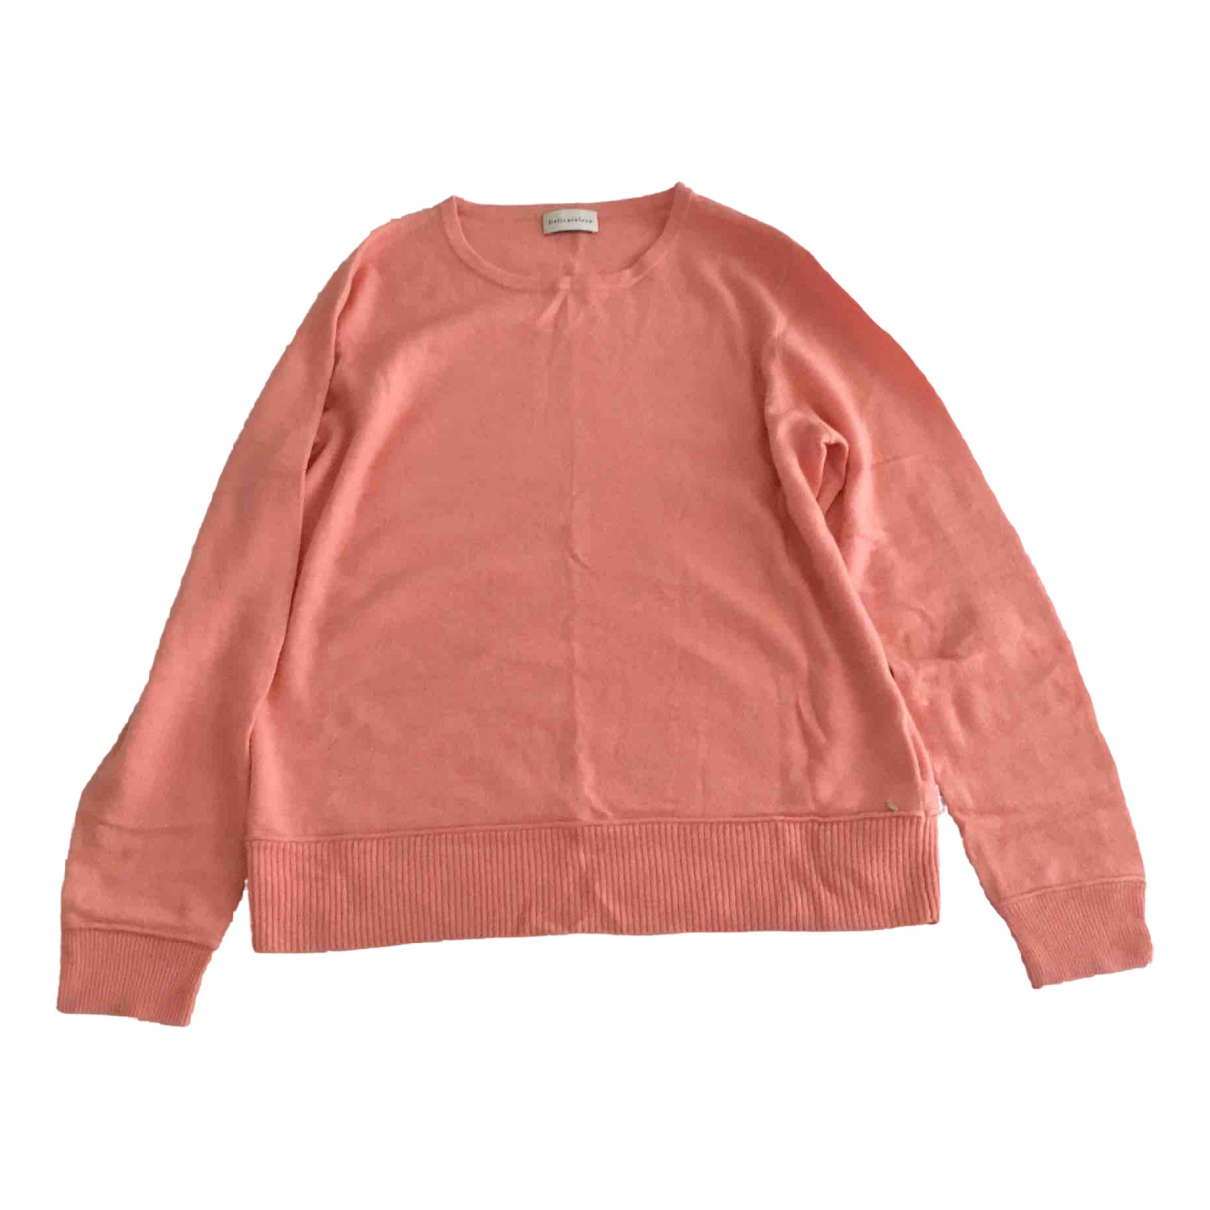 Delicatelove \N Pullover in  Rosa Wolle